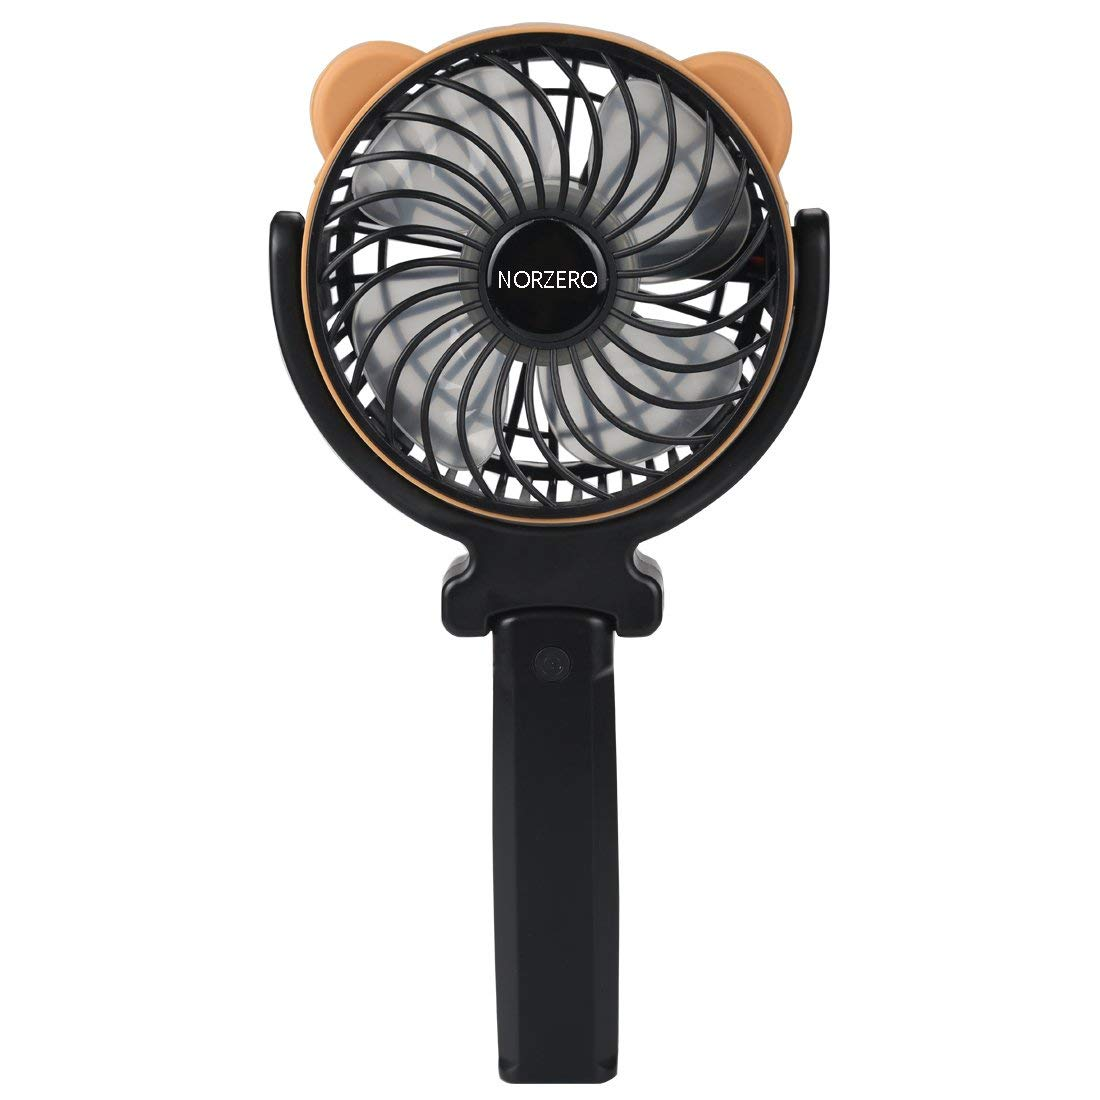 NORZERO Mini Handheld Fan Foldable Fan Personal Portable Cooling Fan Desk Fan with USB Rechargeable Battery Operated Electric Fan(Battery Included)